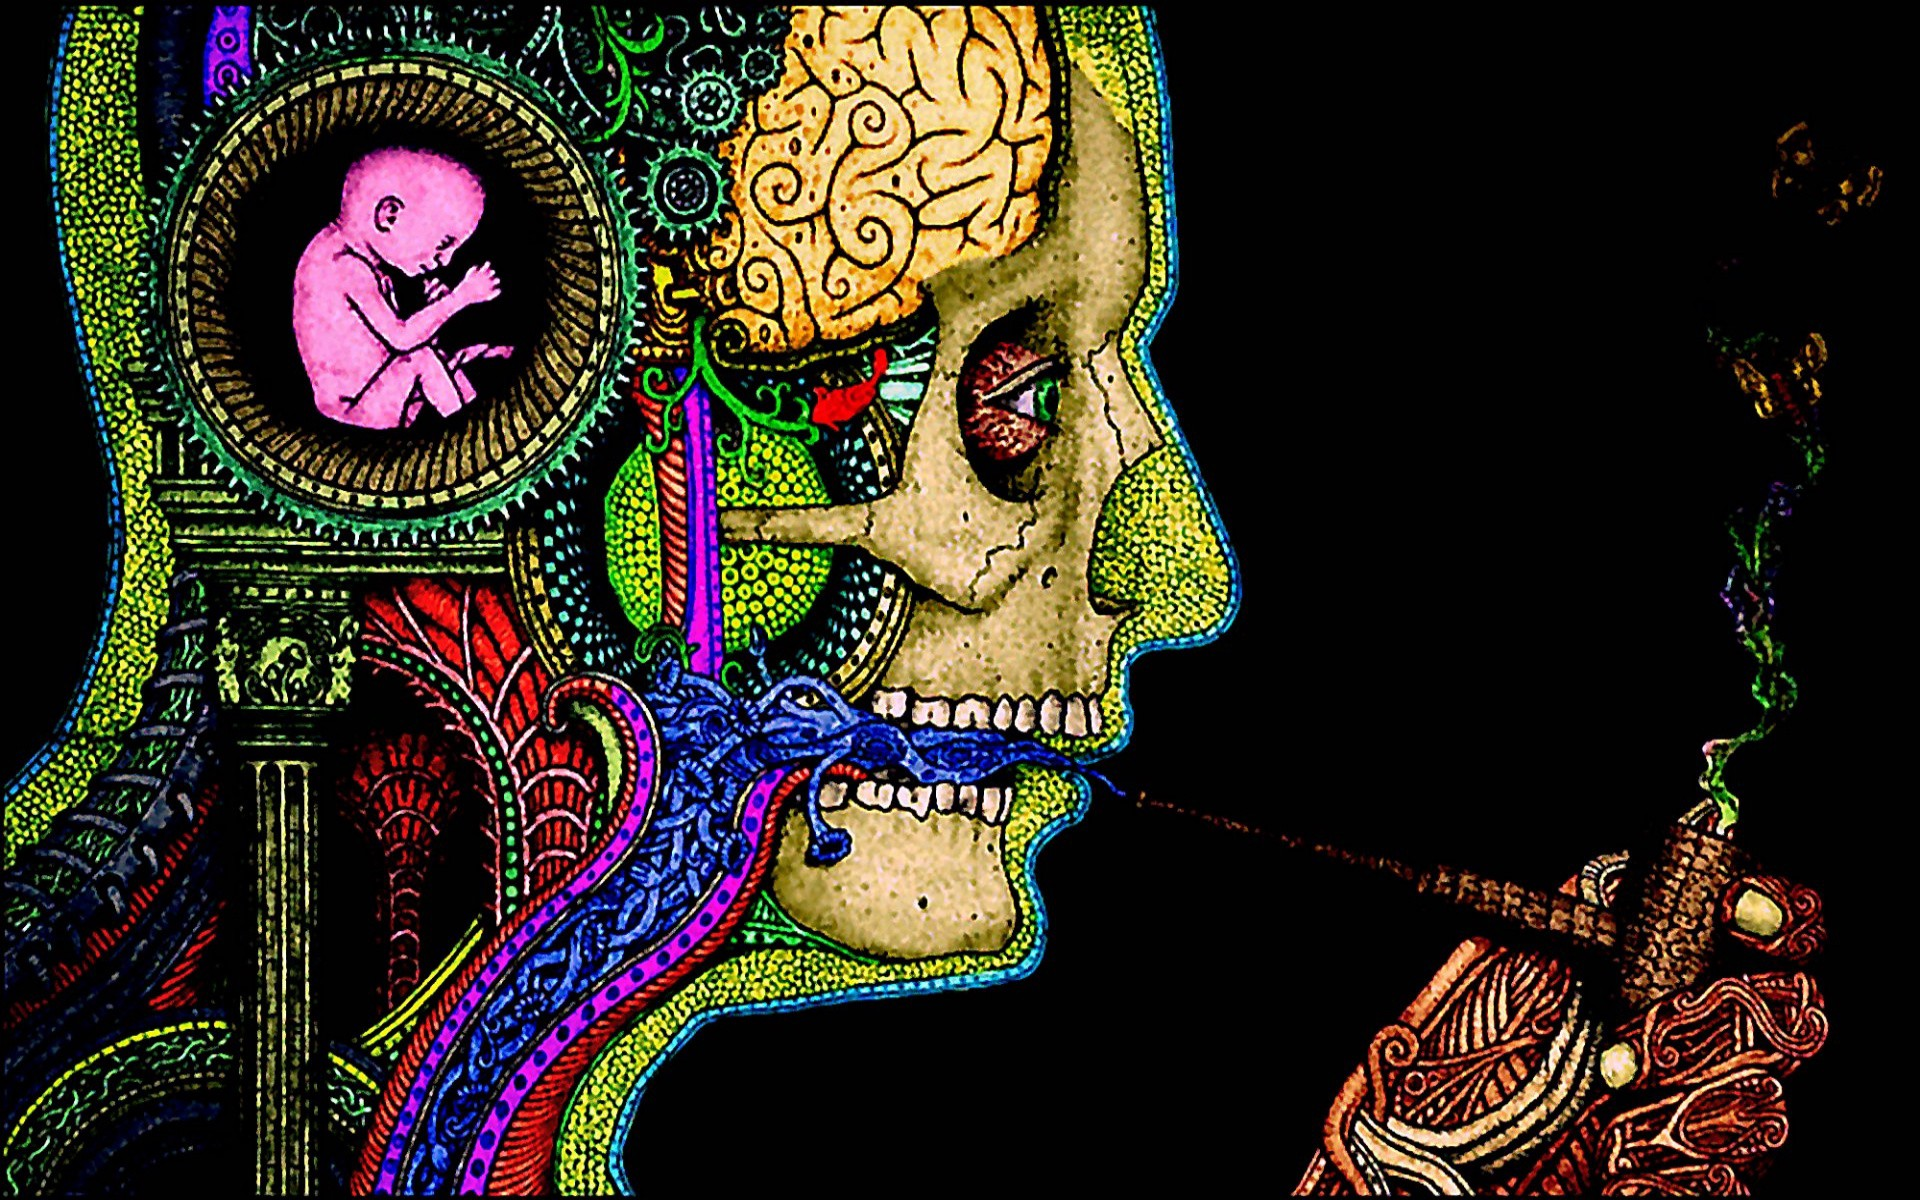 A Heroic Dose of LSD Fixed the Relationship with my Father, and